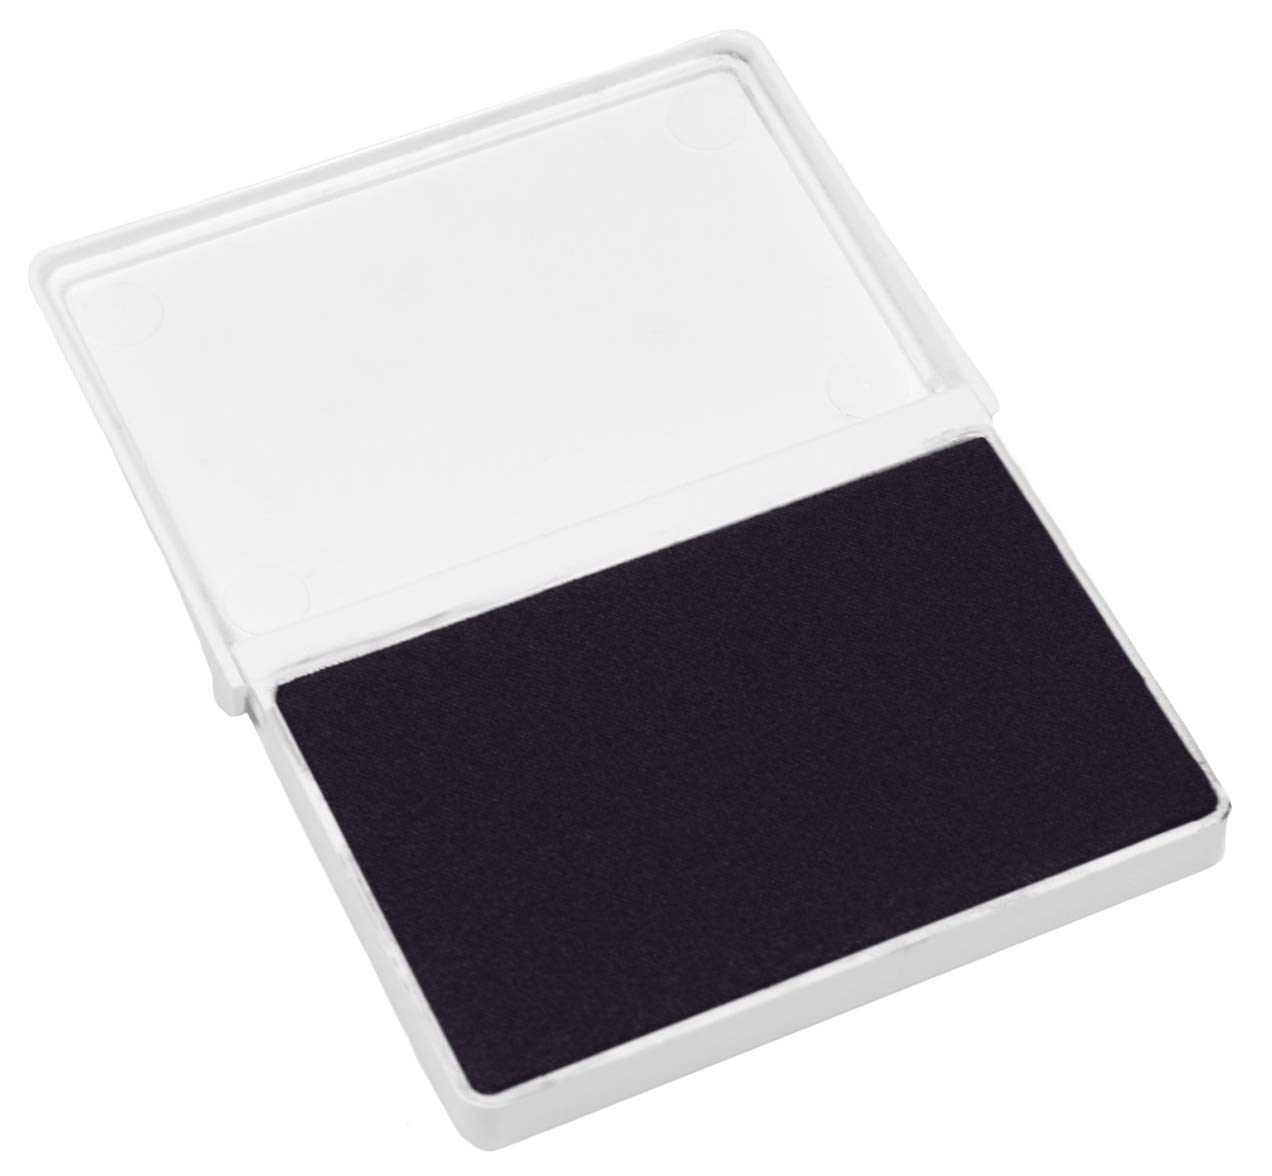 Blue ExcelMark Ink Pad for Rubber Stamps 2-1//8 by 3-1//4